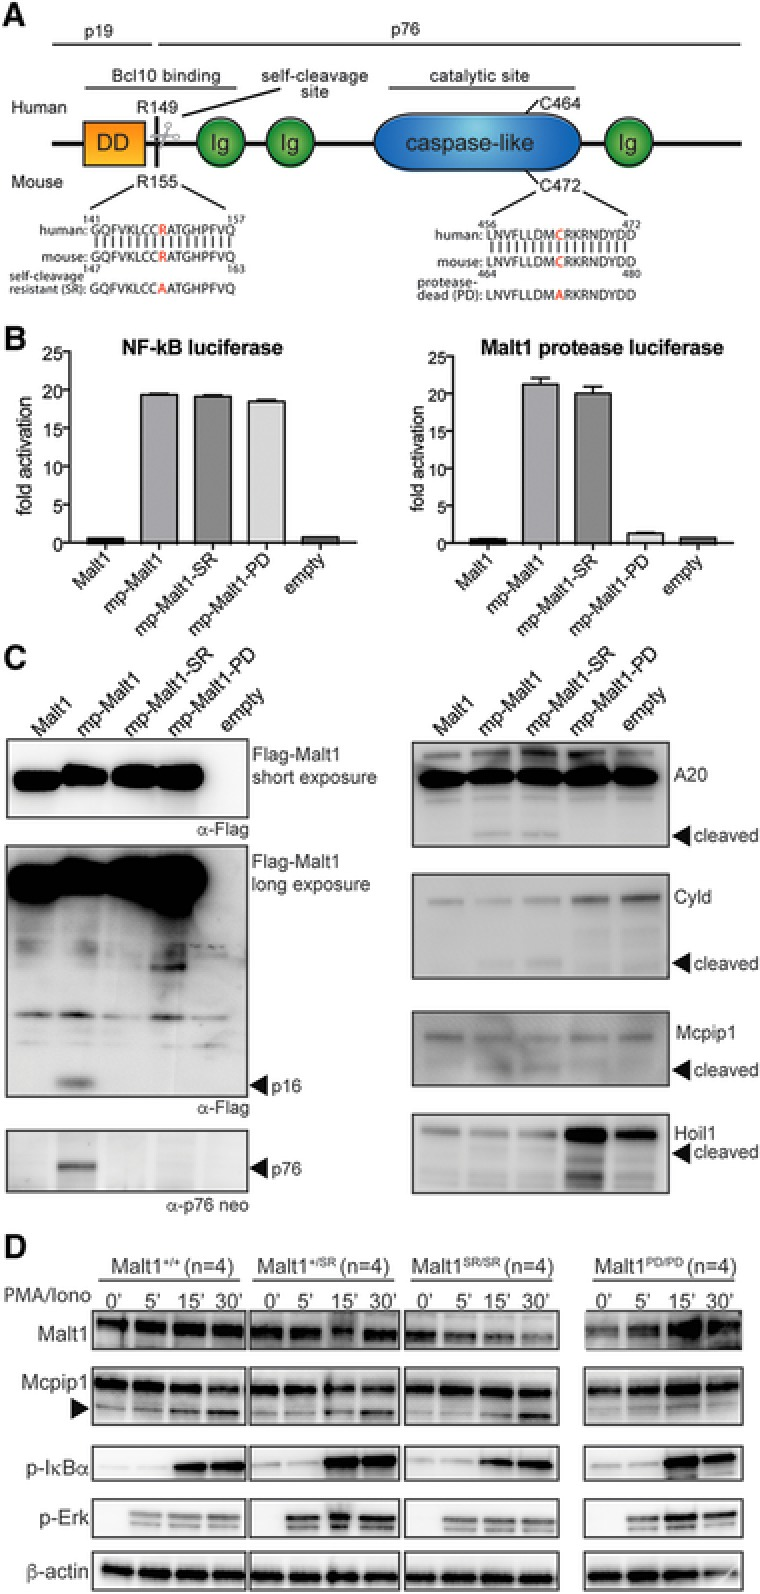 Malt1 R155A knock‐in mice express a catalytically active form of Malt1 but lack self‐cleavage activity (A) Schematic representation of Malt1 protein and its functional death domain (DD), immunoglobulin‐like domains (Ig), auto processing site and catalytic site. (B) MALT1 protease reporter assays of 293T‐BM cells transiently expressing a mouse wild‐type Malt1 (mp‐Malt1), the self‐cleavage resistant R155A mutant (mp‐Malt1‐SR), the protease‐death C472A mutant (mp‐Malt1‐PD) or empty vector (mock). Malt1 protease‐dependent luciferase activity is shown as fold induction of vector‐transfected cells. The data are shown as mean +SD of four pooled independent experiments, which were each performed in triplicates. ( C ) Cell lysates were immunoblotted with the indicated antibodies to detect MALT1, its N‐ and C‐terminal auto‐cleavage fragments (p16 and p76 respectively) and its proteolytic targets. Arrows indicate the cleavage fragments generated by Malt1 protease activity. (D) Immunoblot analysis of spleen of Malt1 +/+ , Malt1 +/SR , Malt1 SR/SR and Malt1 PD/PD mice. Splenocytes from 4 mice were combined and then incubated with or without PMA and ionomycin for the indicated times. A non‐specific band generated with the Mcpip1 antibody was used a loading control. Data are representative of three independent experiments.